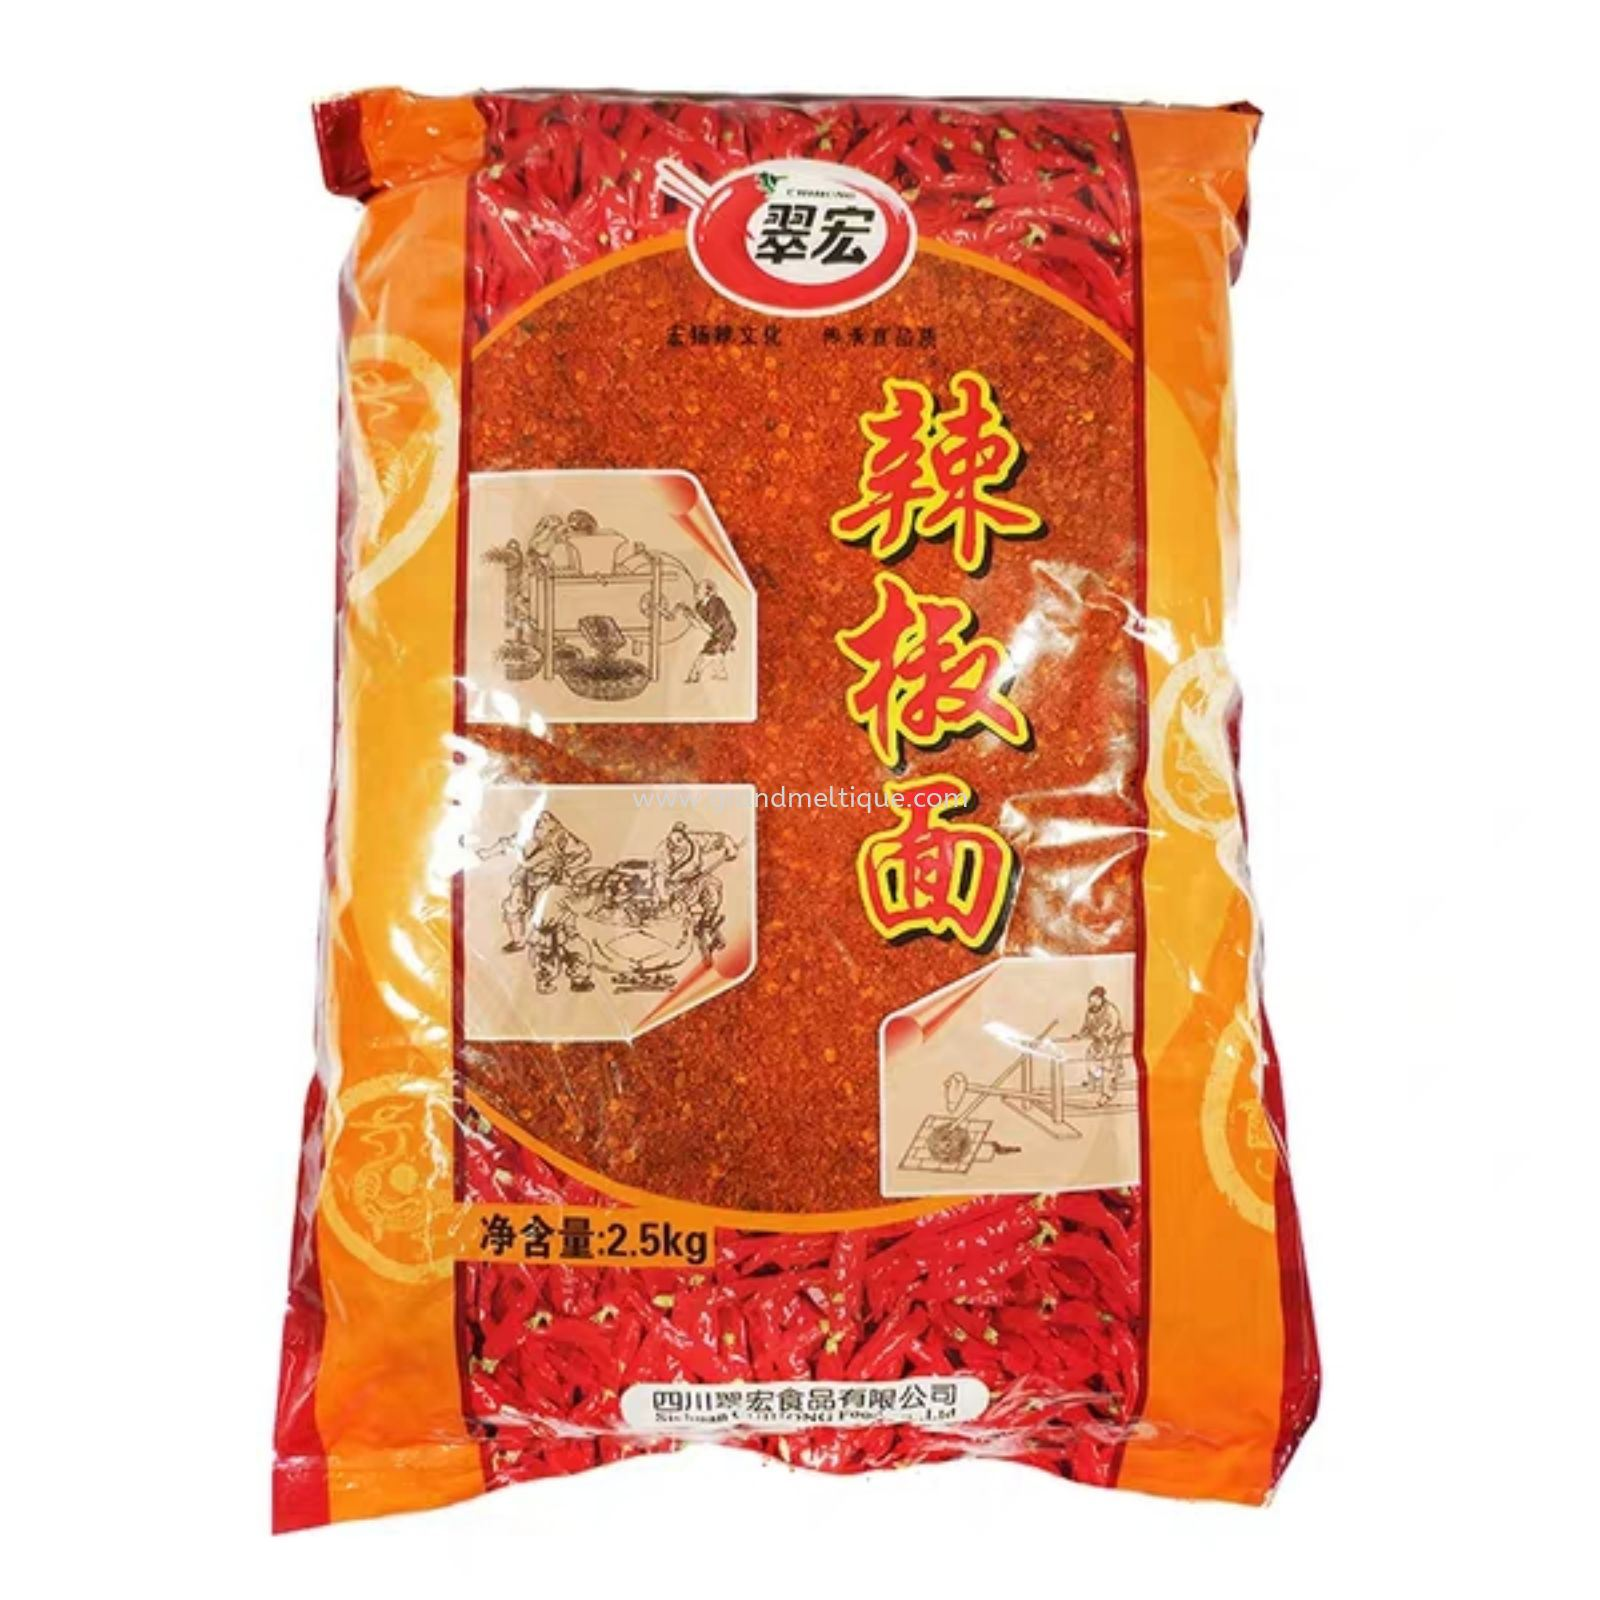 CUI HONG SPICY POWDER 2.5kg